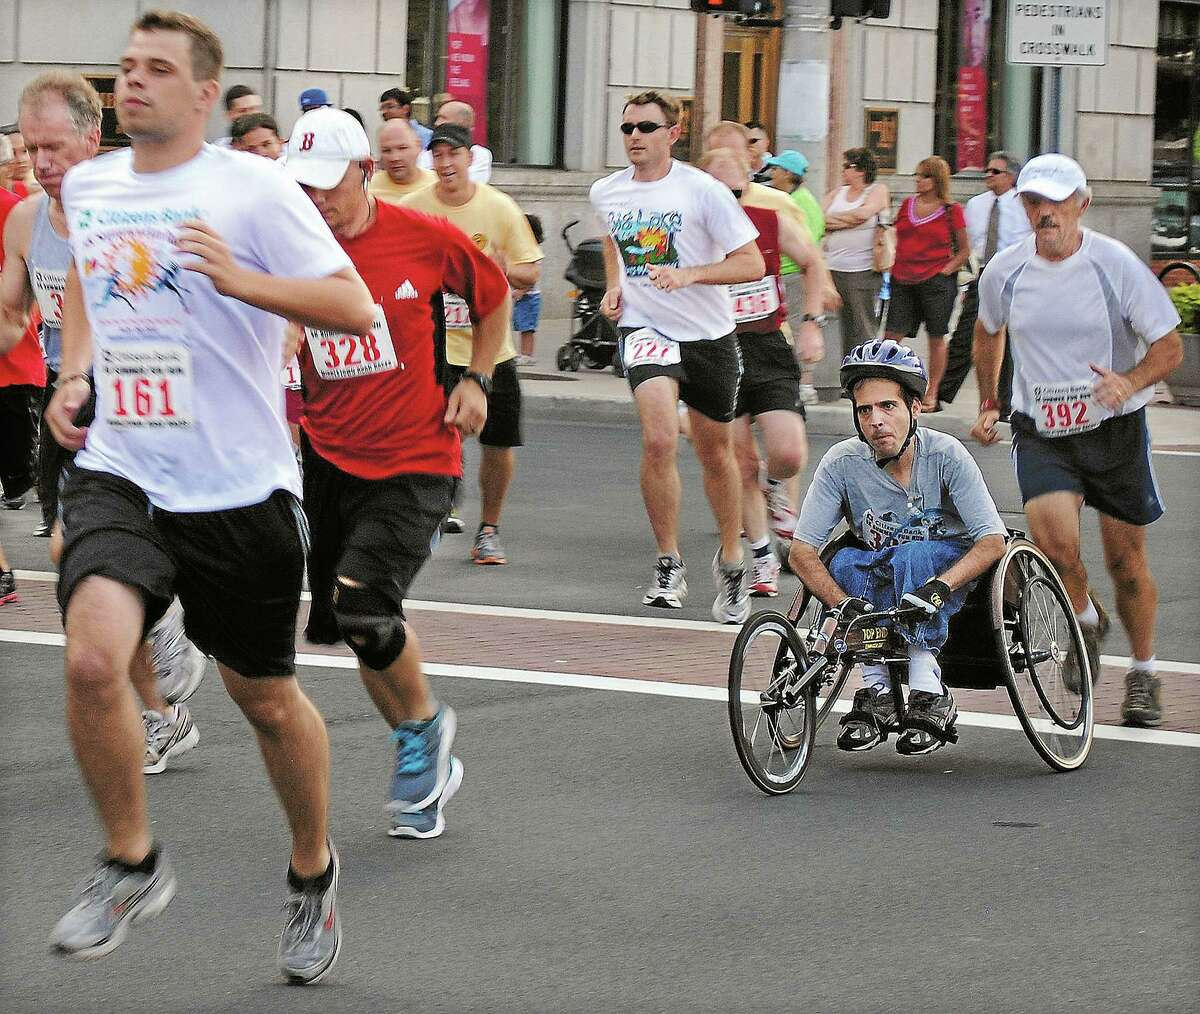 Runners compete in the 2011 Citizens Bank 5K Summer Fun Run on Main Street in Middletown.